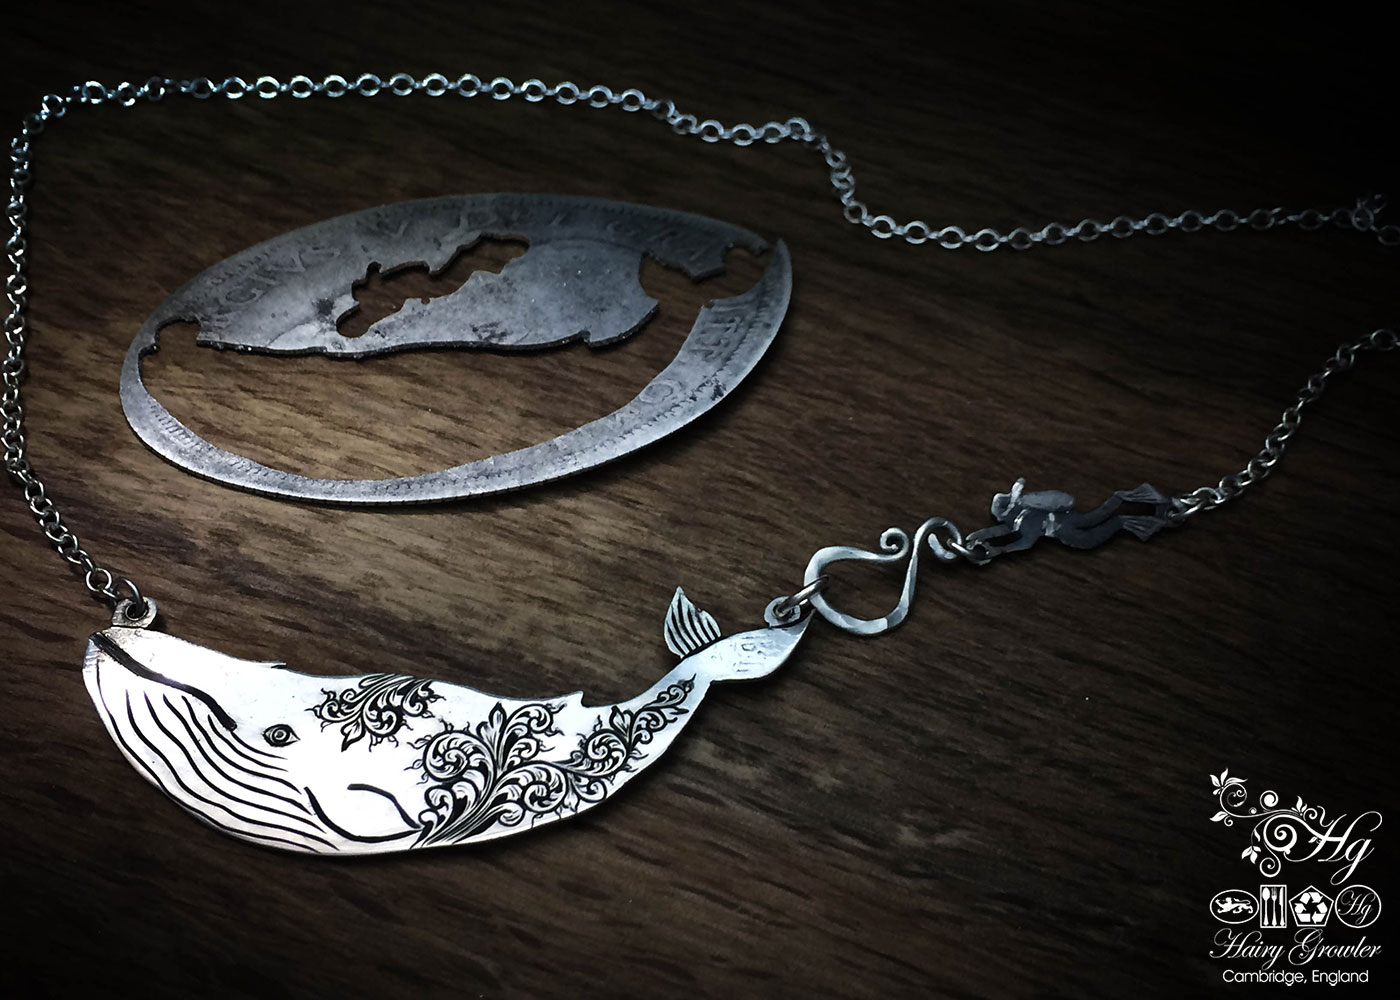 Handcrafted and recycled sterling silver half crown coin leviathan whale necklace